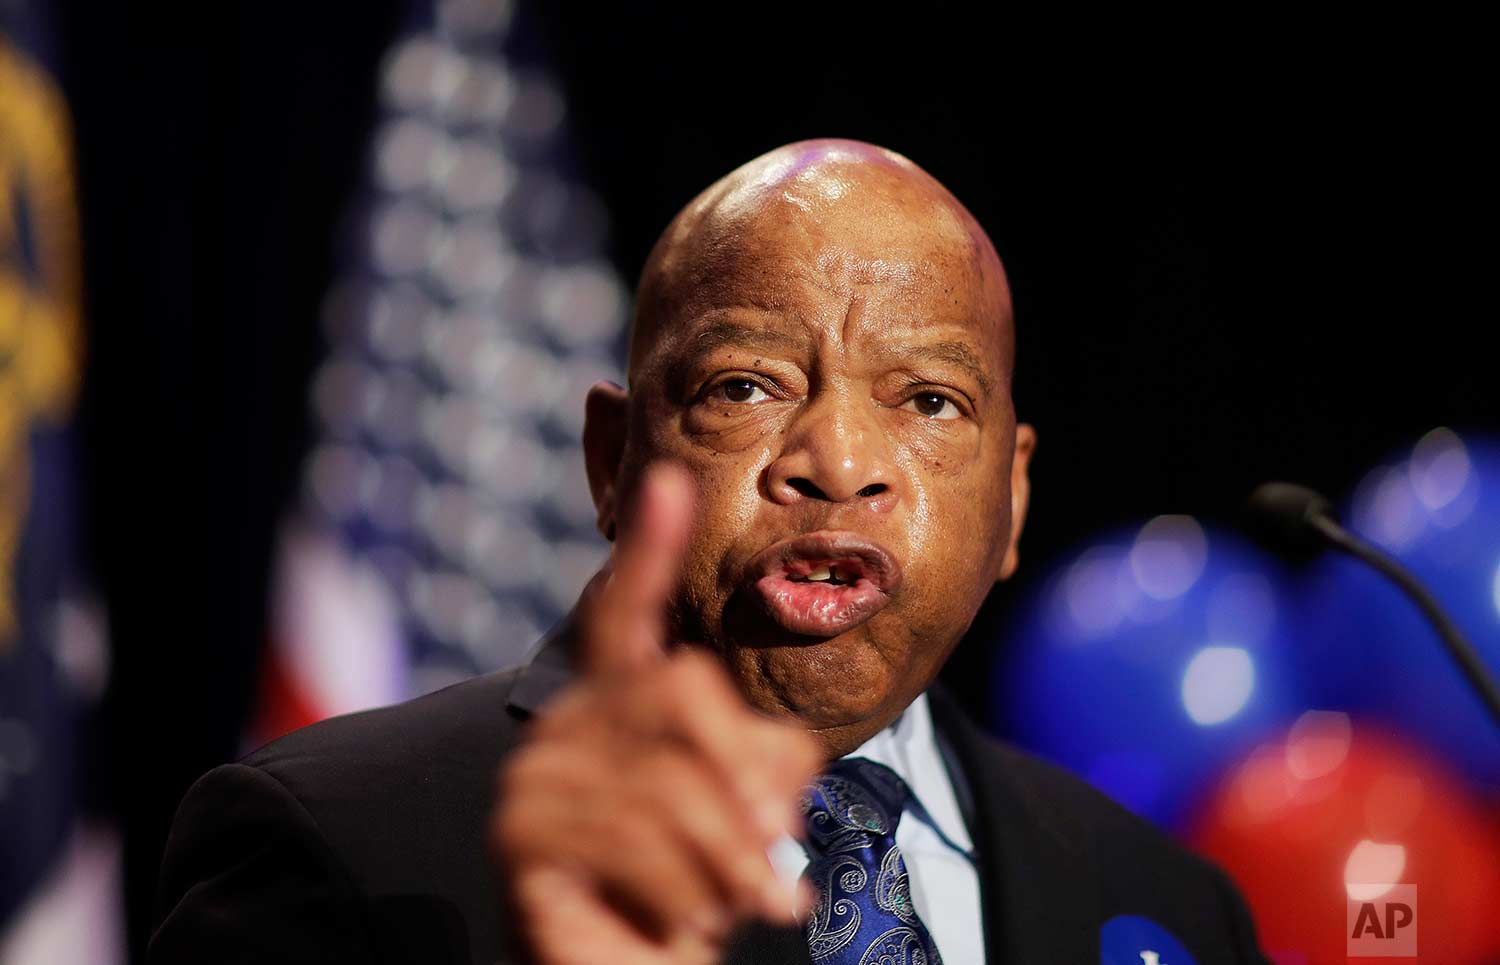 """In this Tuesday, June 20, 2017 photo, Rep. John Lewis, D-Ga., speaks at an election night party for Democratic candidate for 6th congressional district Jon Ossoff in Atlanta. Commissioners in a suburban Atlanta county have voted to publicly reprimand a colleague, Commissioner Tommy Hunter, for calling civil rights leader and U.S. Rep. John Lewis a """"racist pig"""" on Facebook. News outlets reported the decision on Tuesday, June 20, 2017, following the recommendation of Gwinnett County's ethics board, which voted earlier in June to sustain the ethics complaint against the Commissioner. (AP Photo/David Goldman)"""